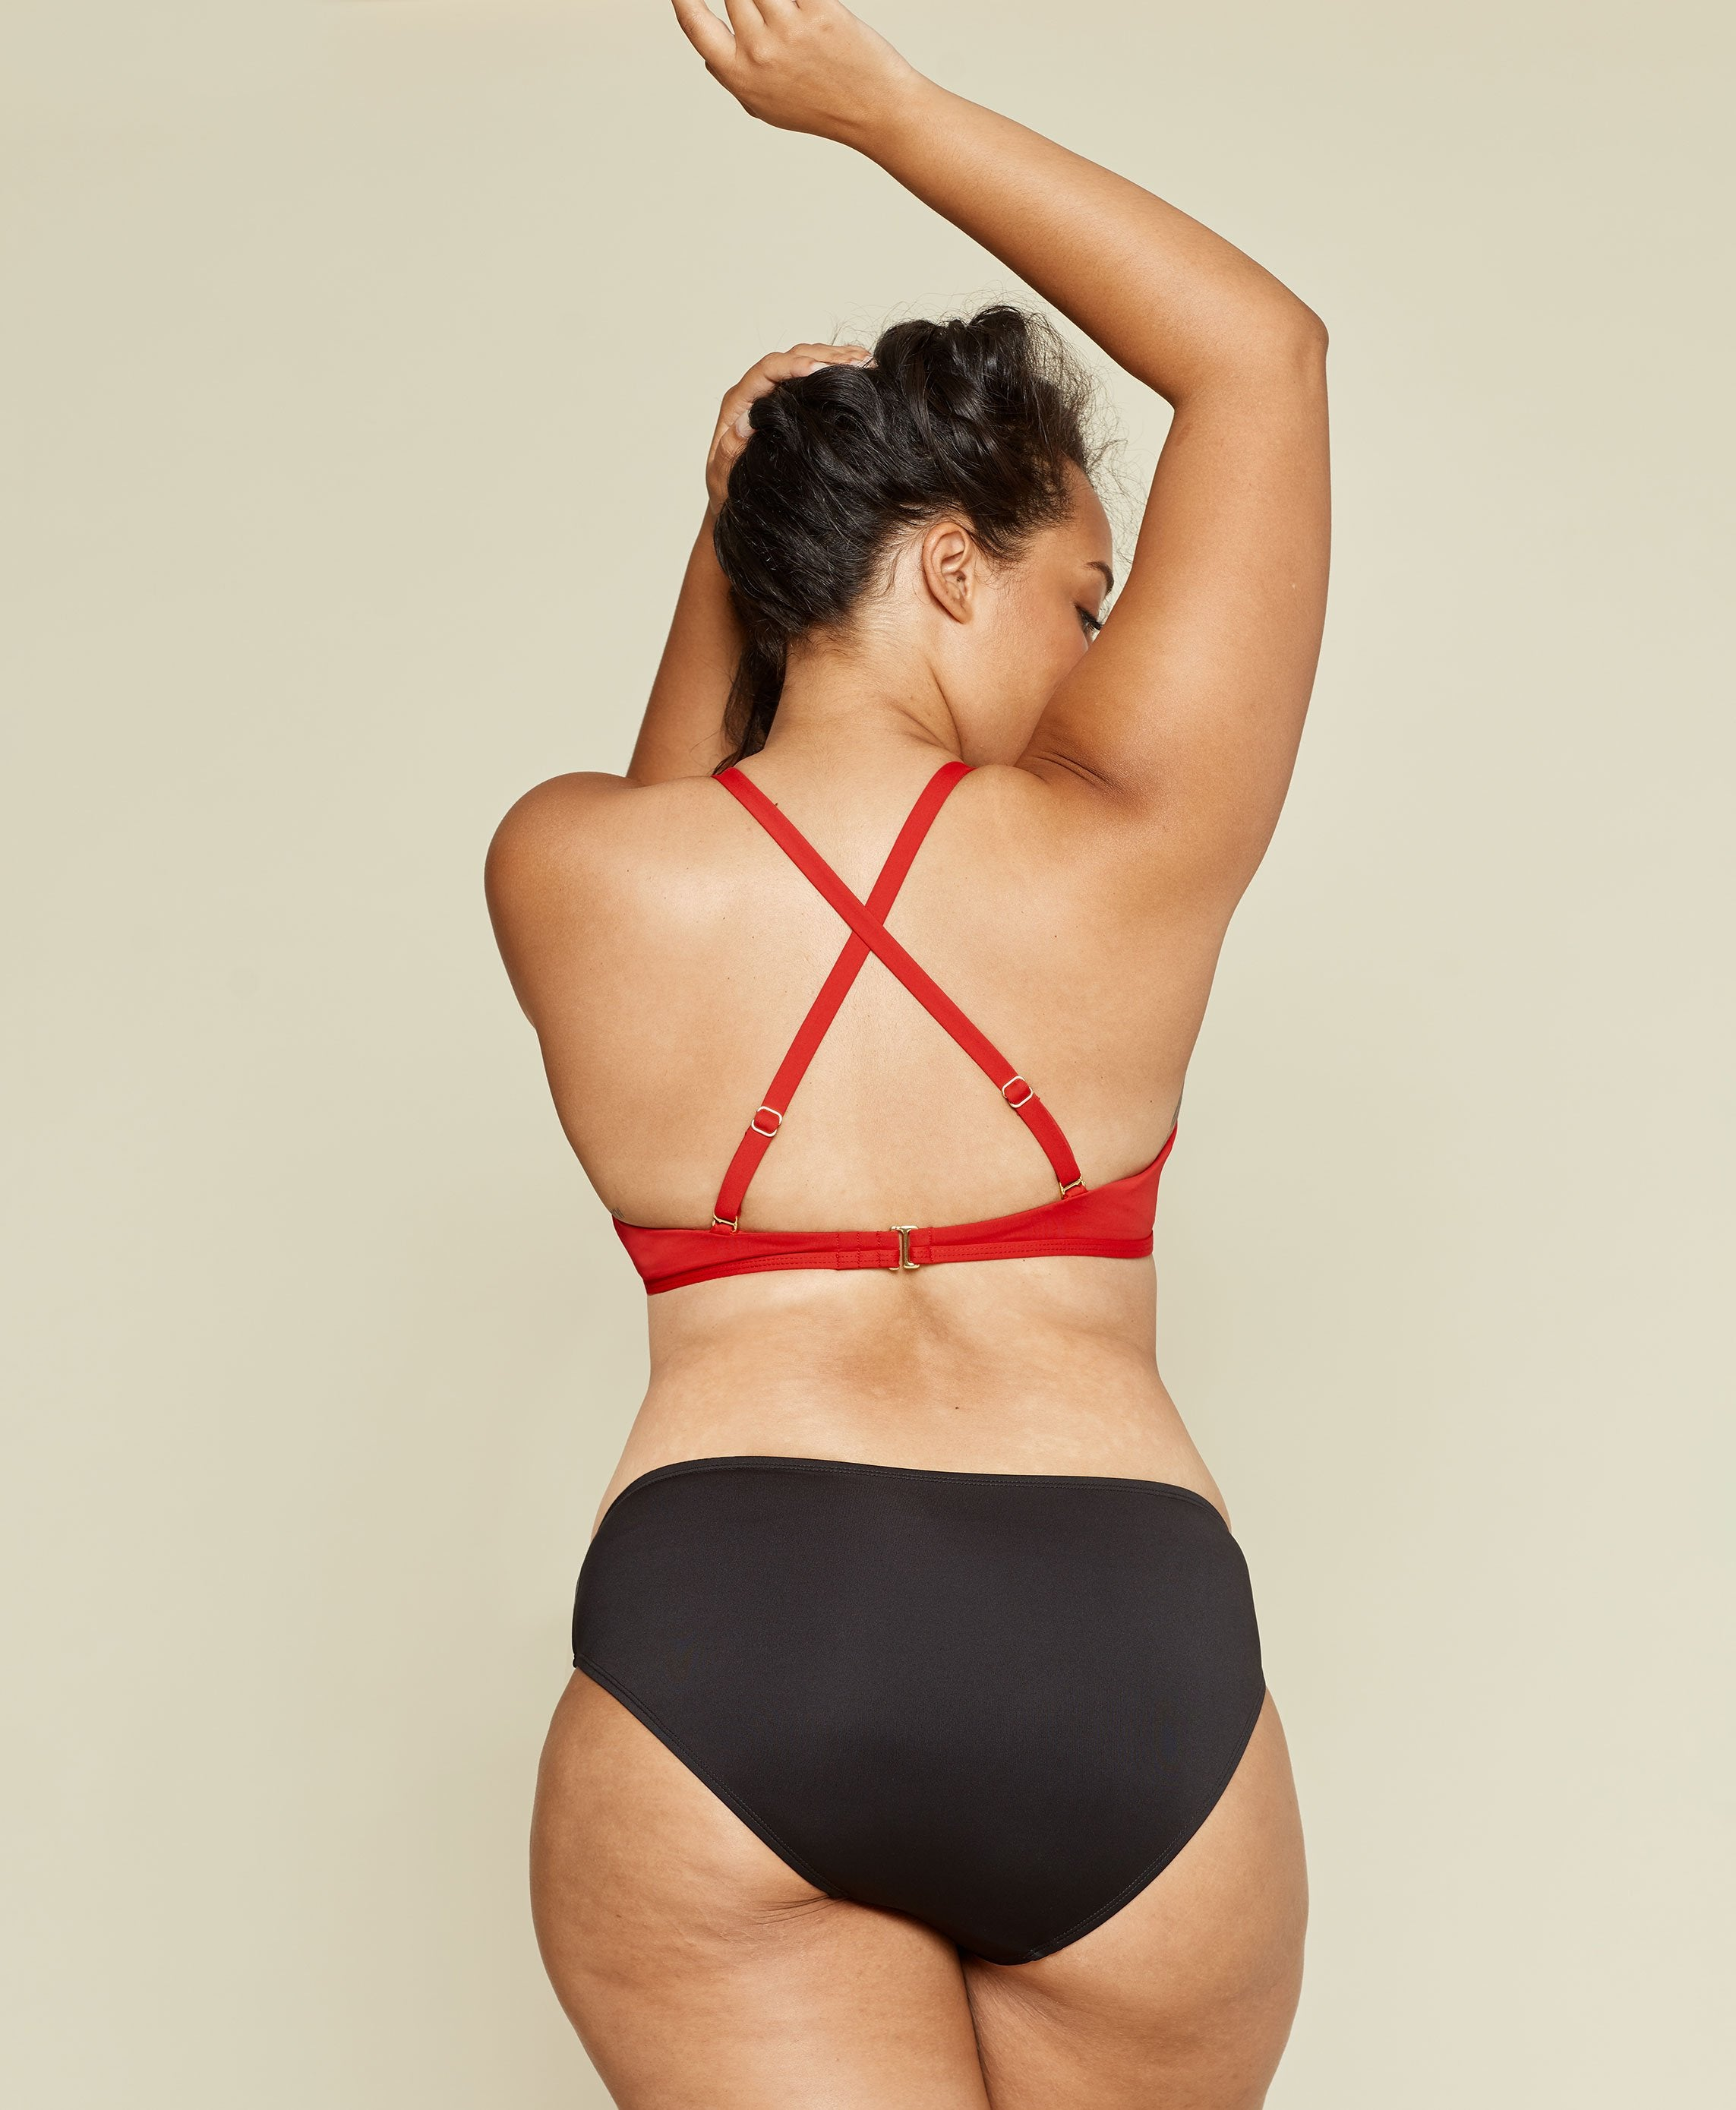 The Valencia Top - Flat - Cherry Red